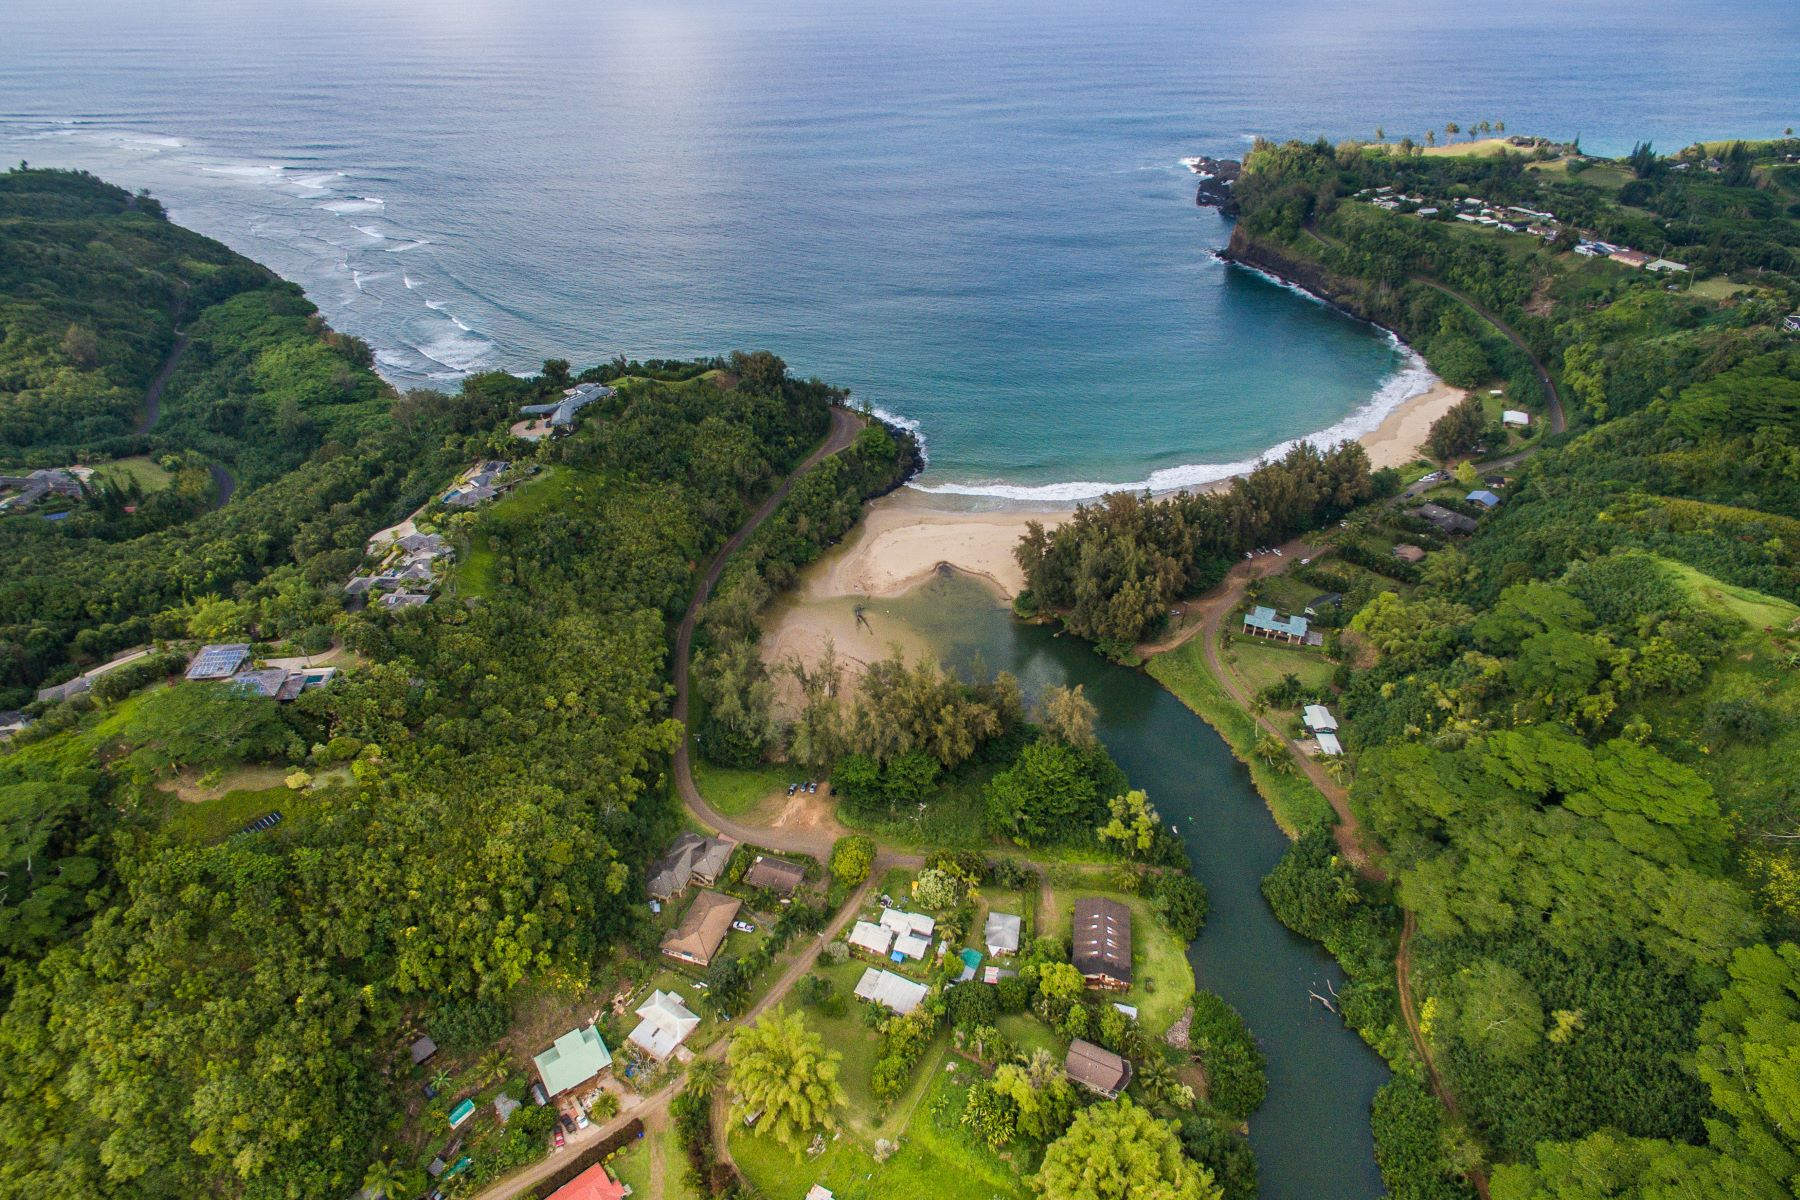 Moradia para Venda às Beautiful Prime Kalihiwai Valley Property Just Steps to River and Bay 3167 Kalihiwai Road #B Kilauea, Havaí, 96754 Estados Unidos